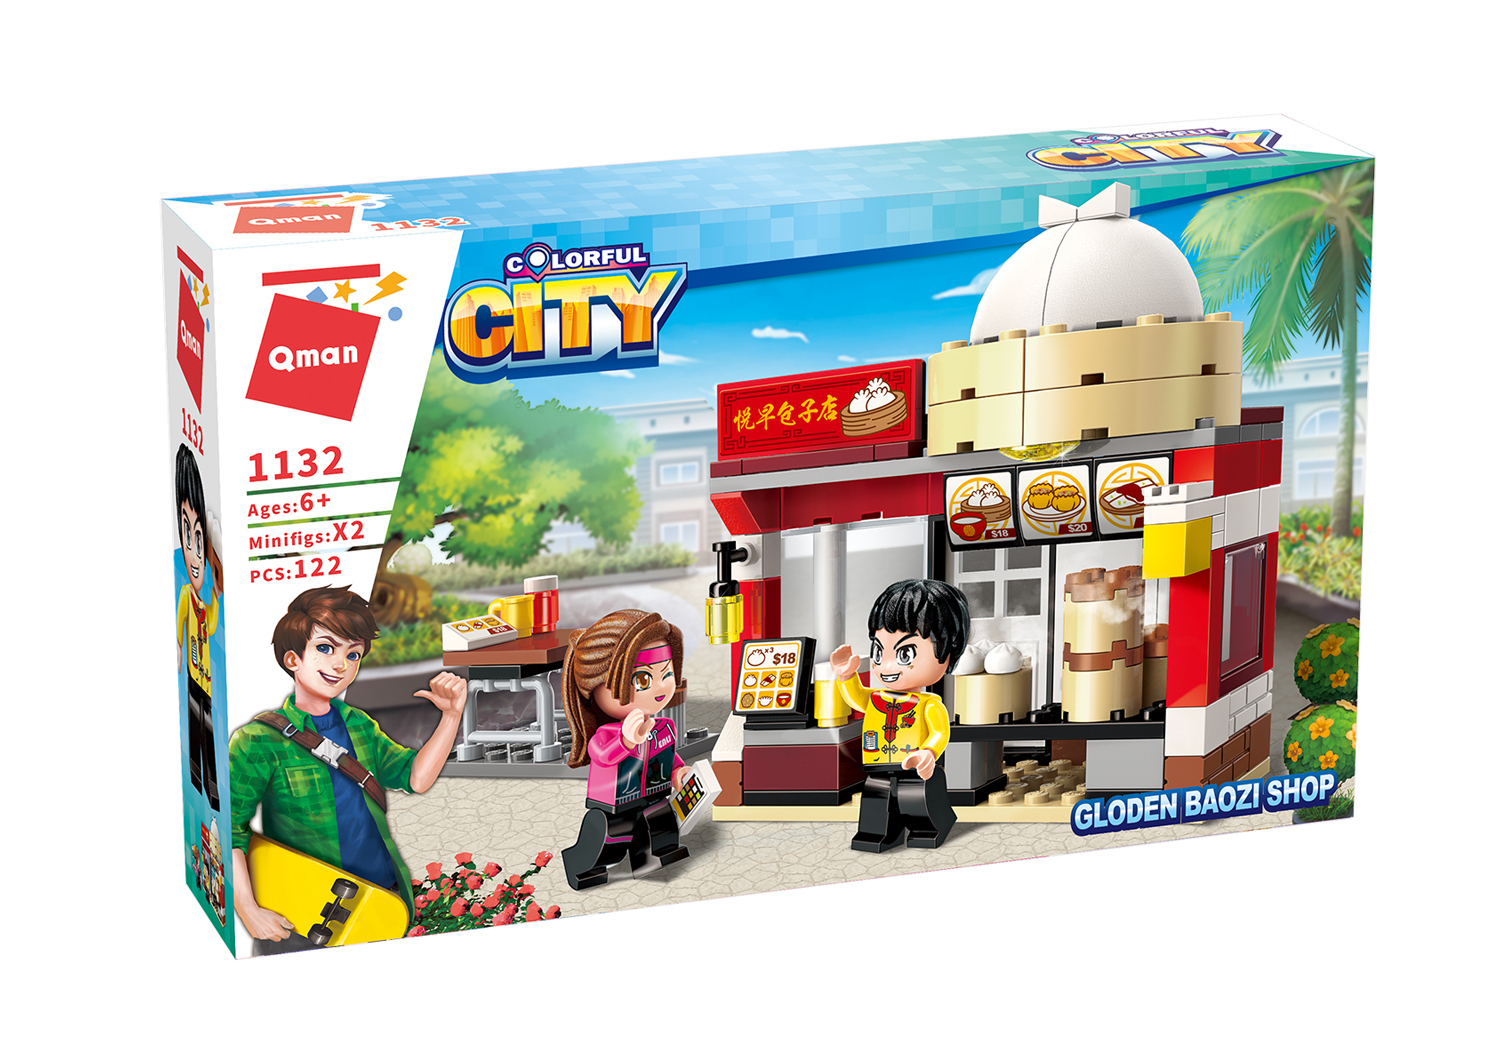 Qman 1132 Colorful City Golden Baozi Shop / Asiatischer Imbiss